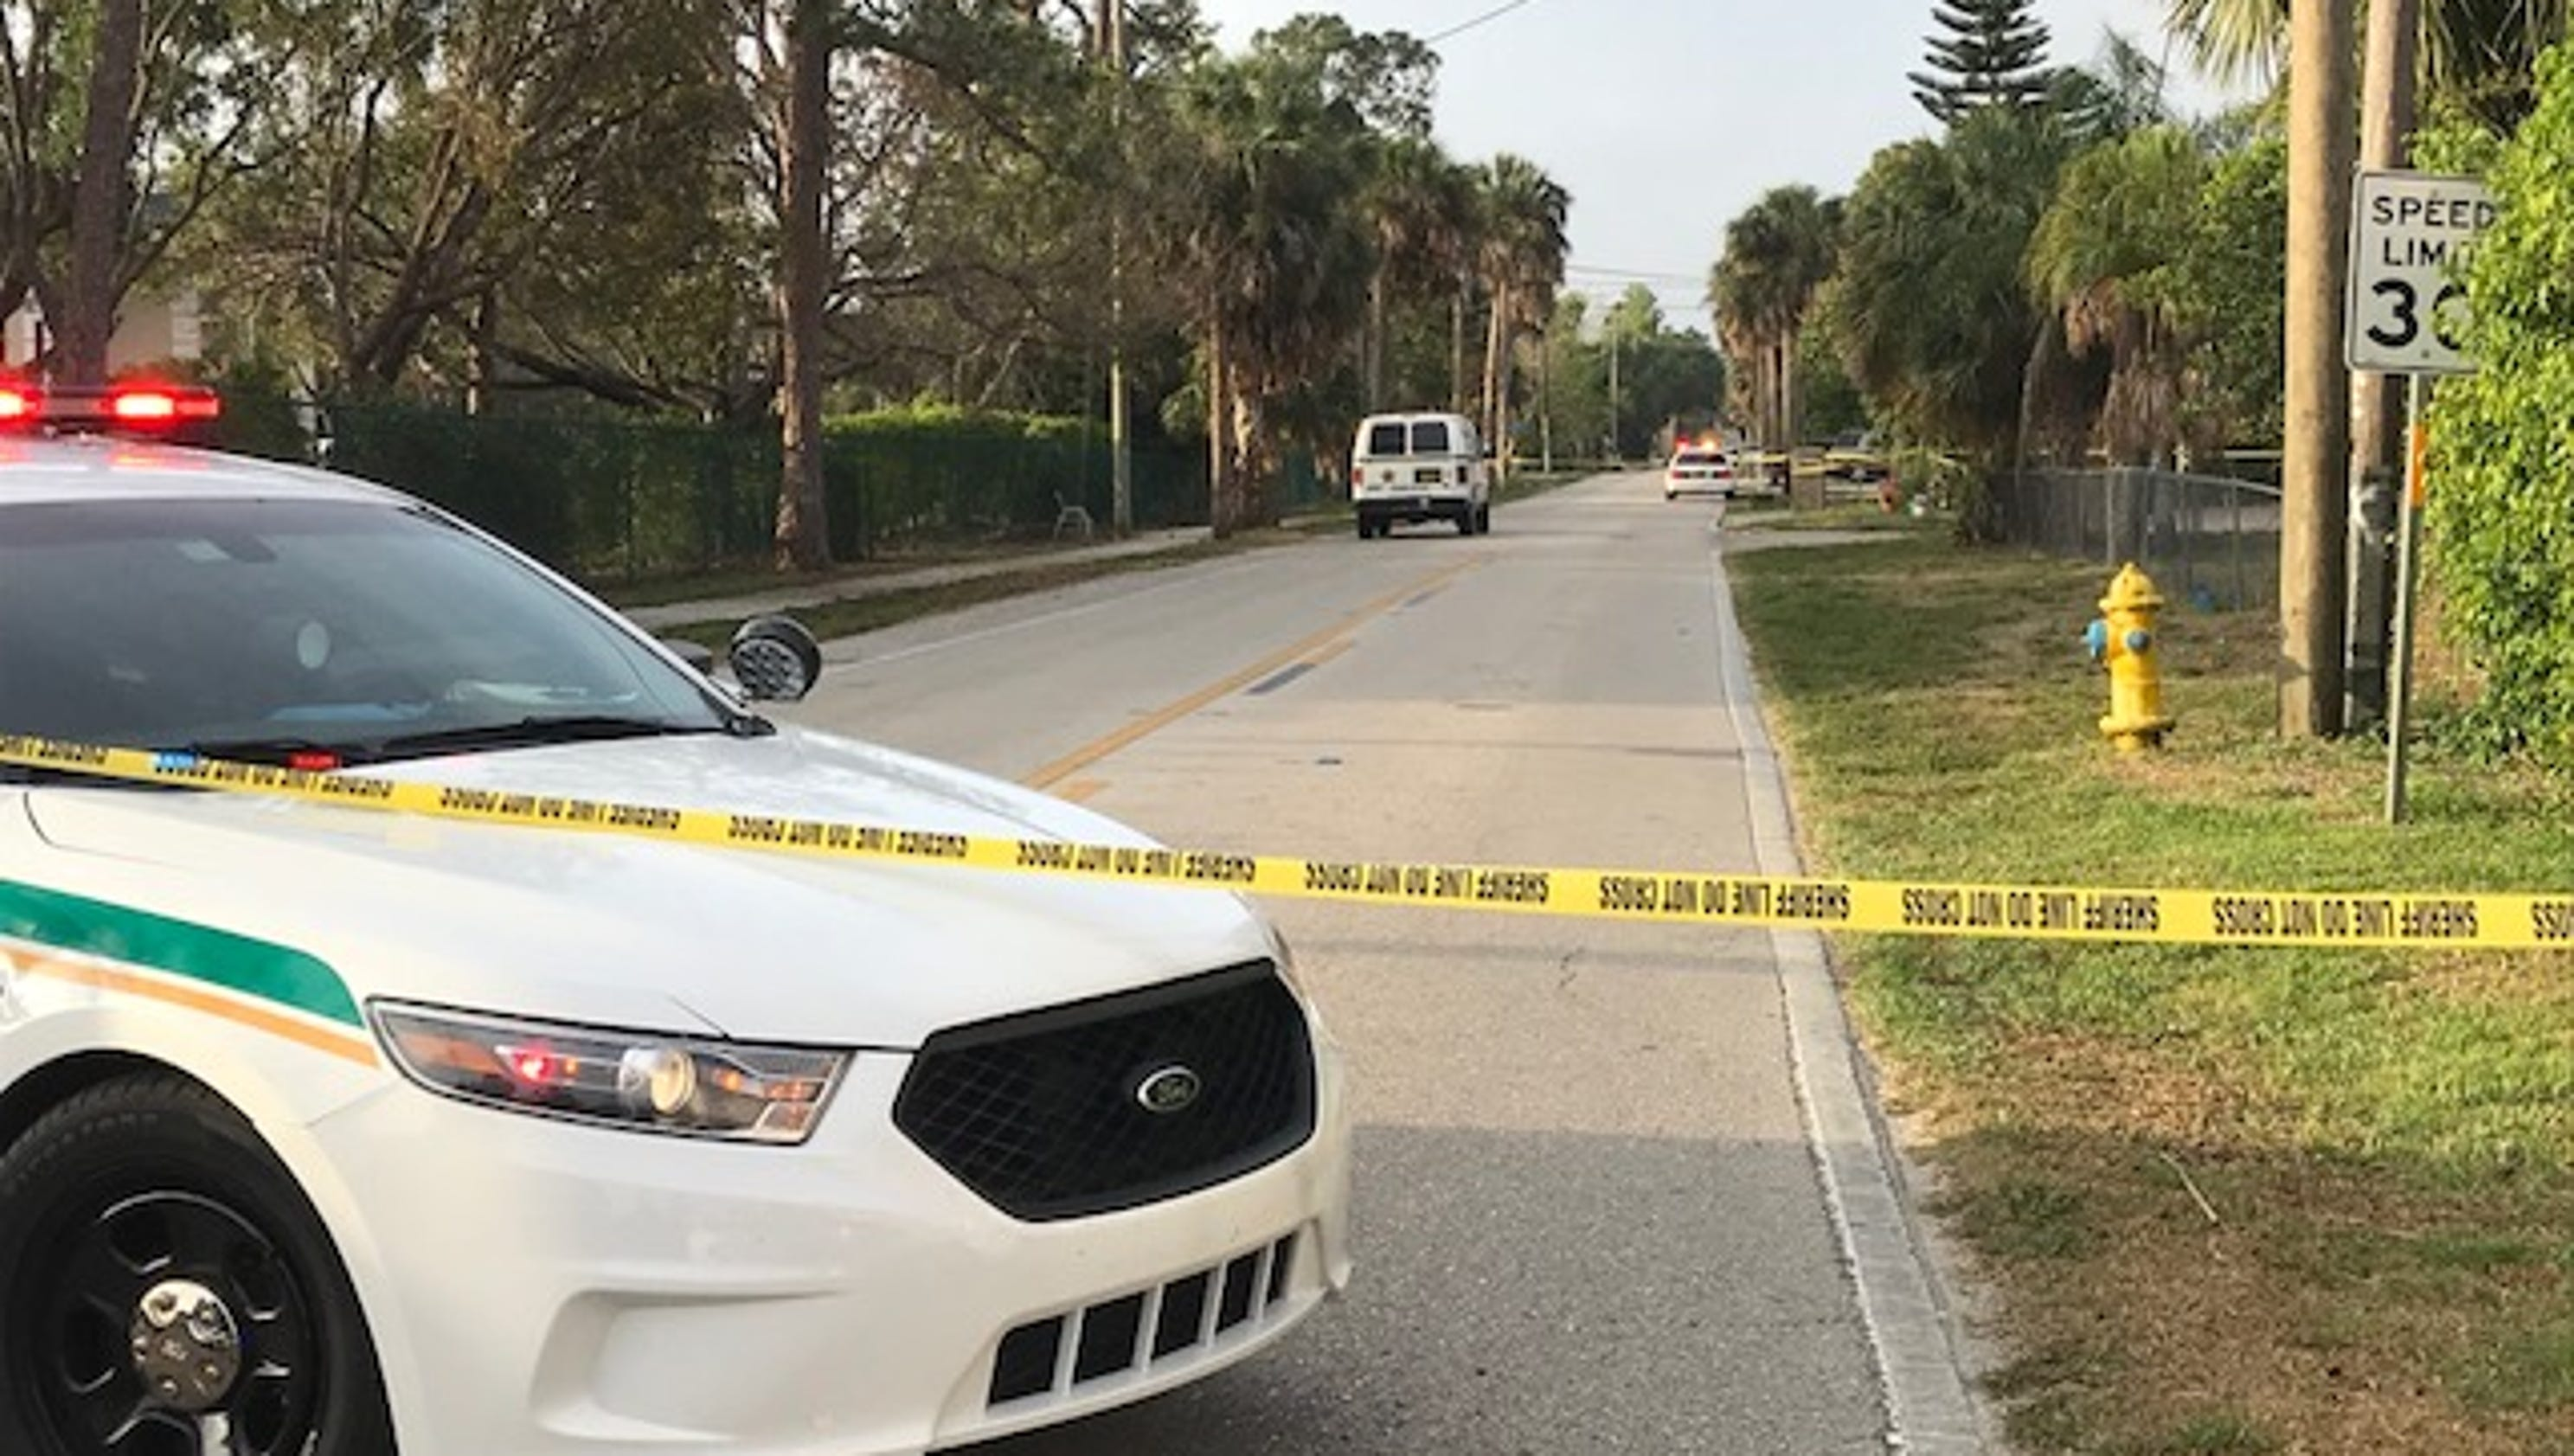 story at crime beach back img acura in and myers a look april stories estero news fort lehigh